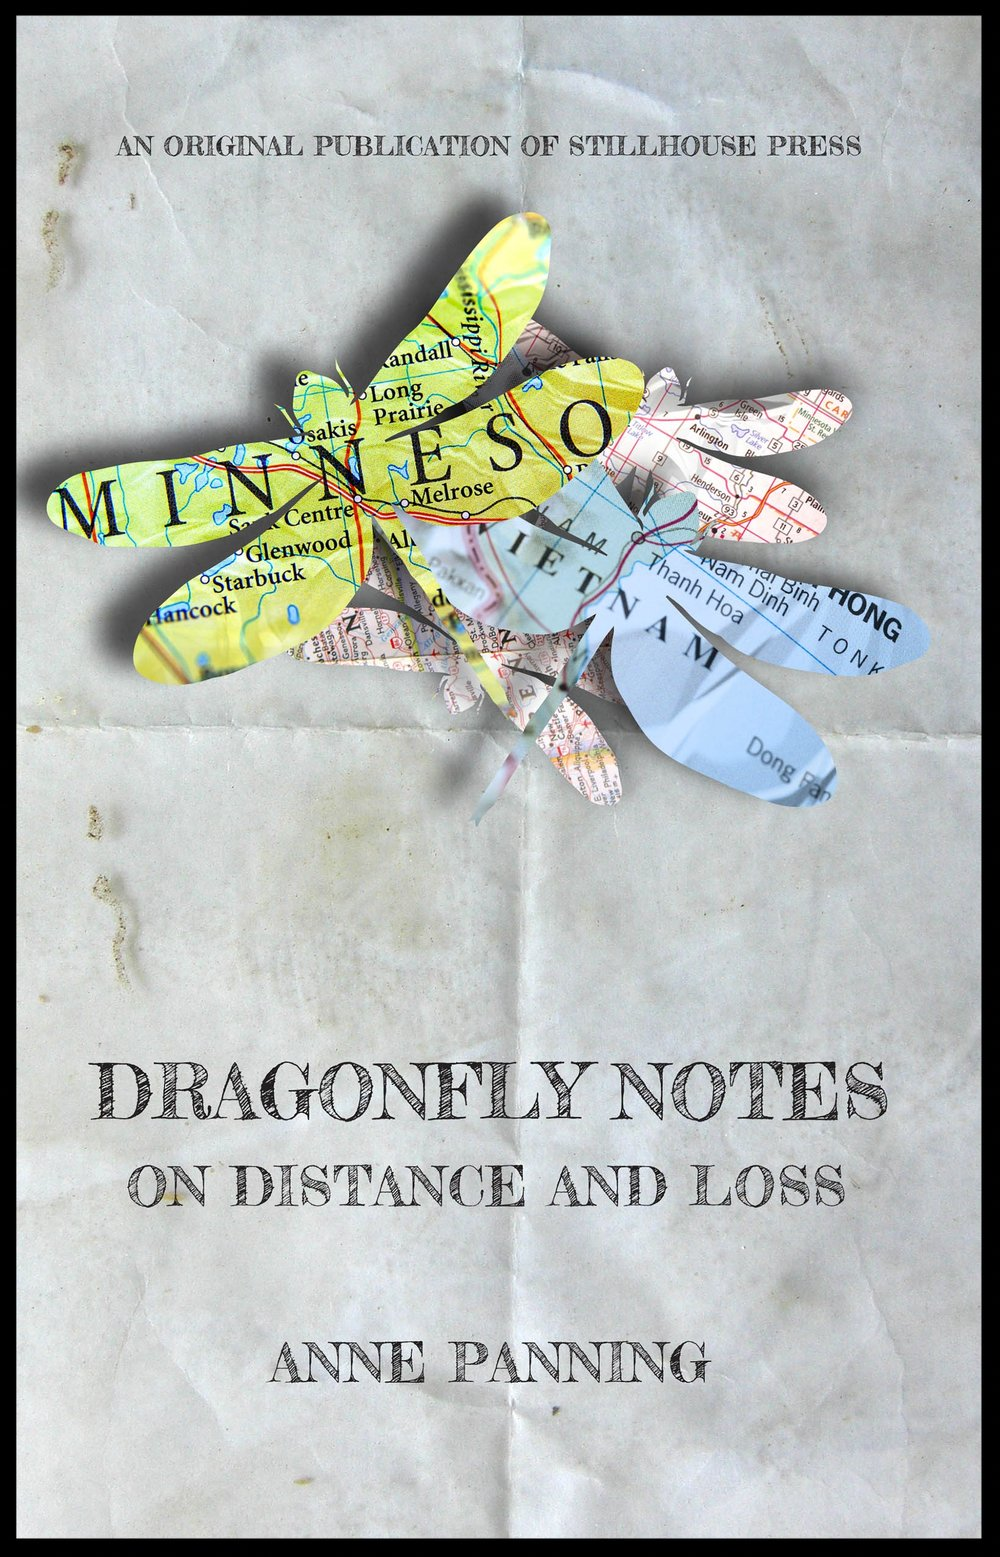 """Dragonfly Notes"" is available now from Stillhouse Press."